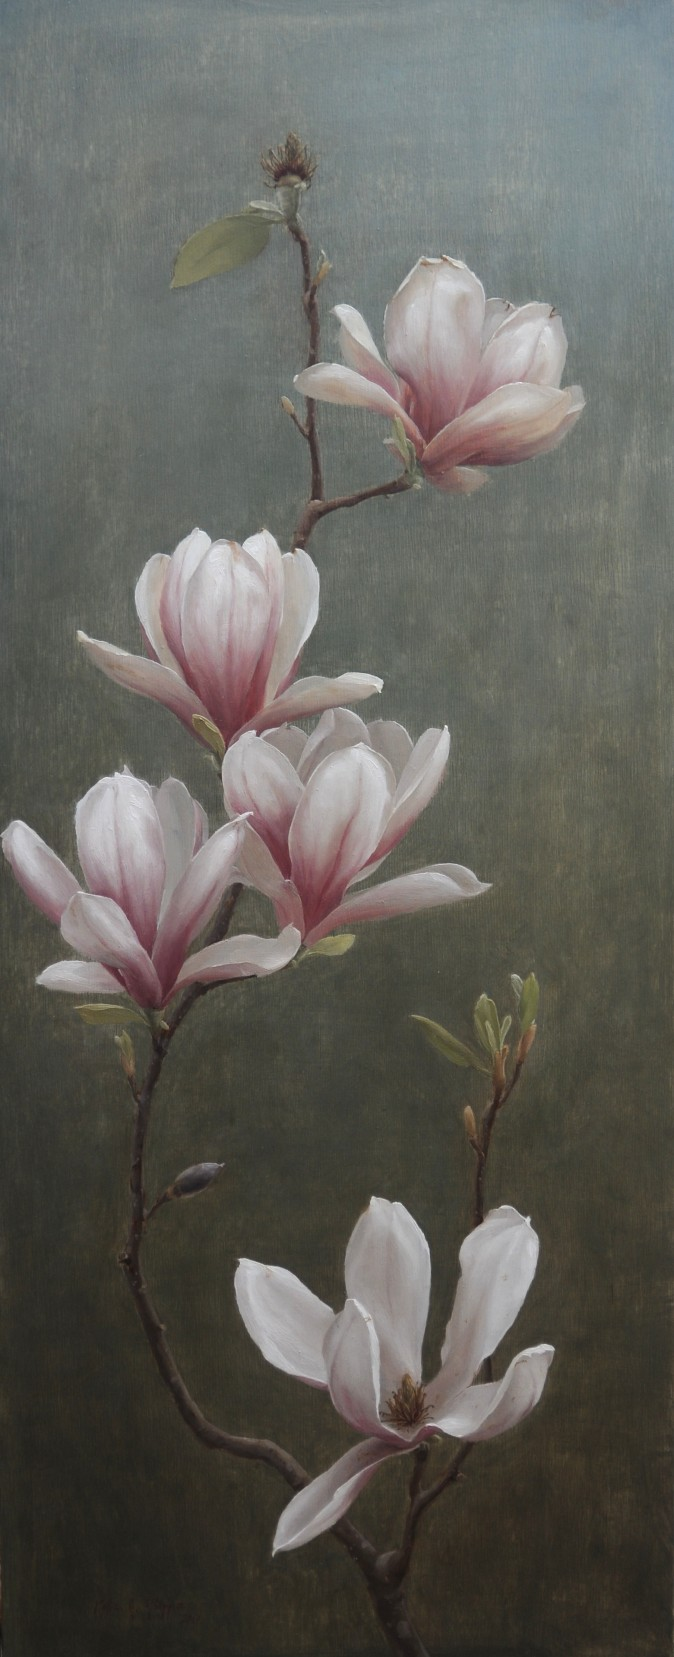 """""""Magnolia,"""" 2017, by Katie G. Whipple. Oil on wood, 30 inches by 12 inches. (Courtesy of Katie G. Whipple)"""